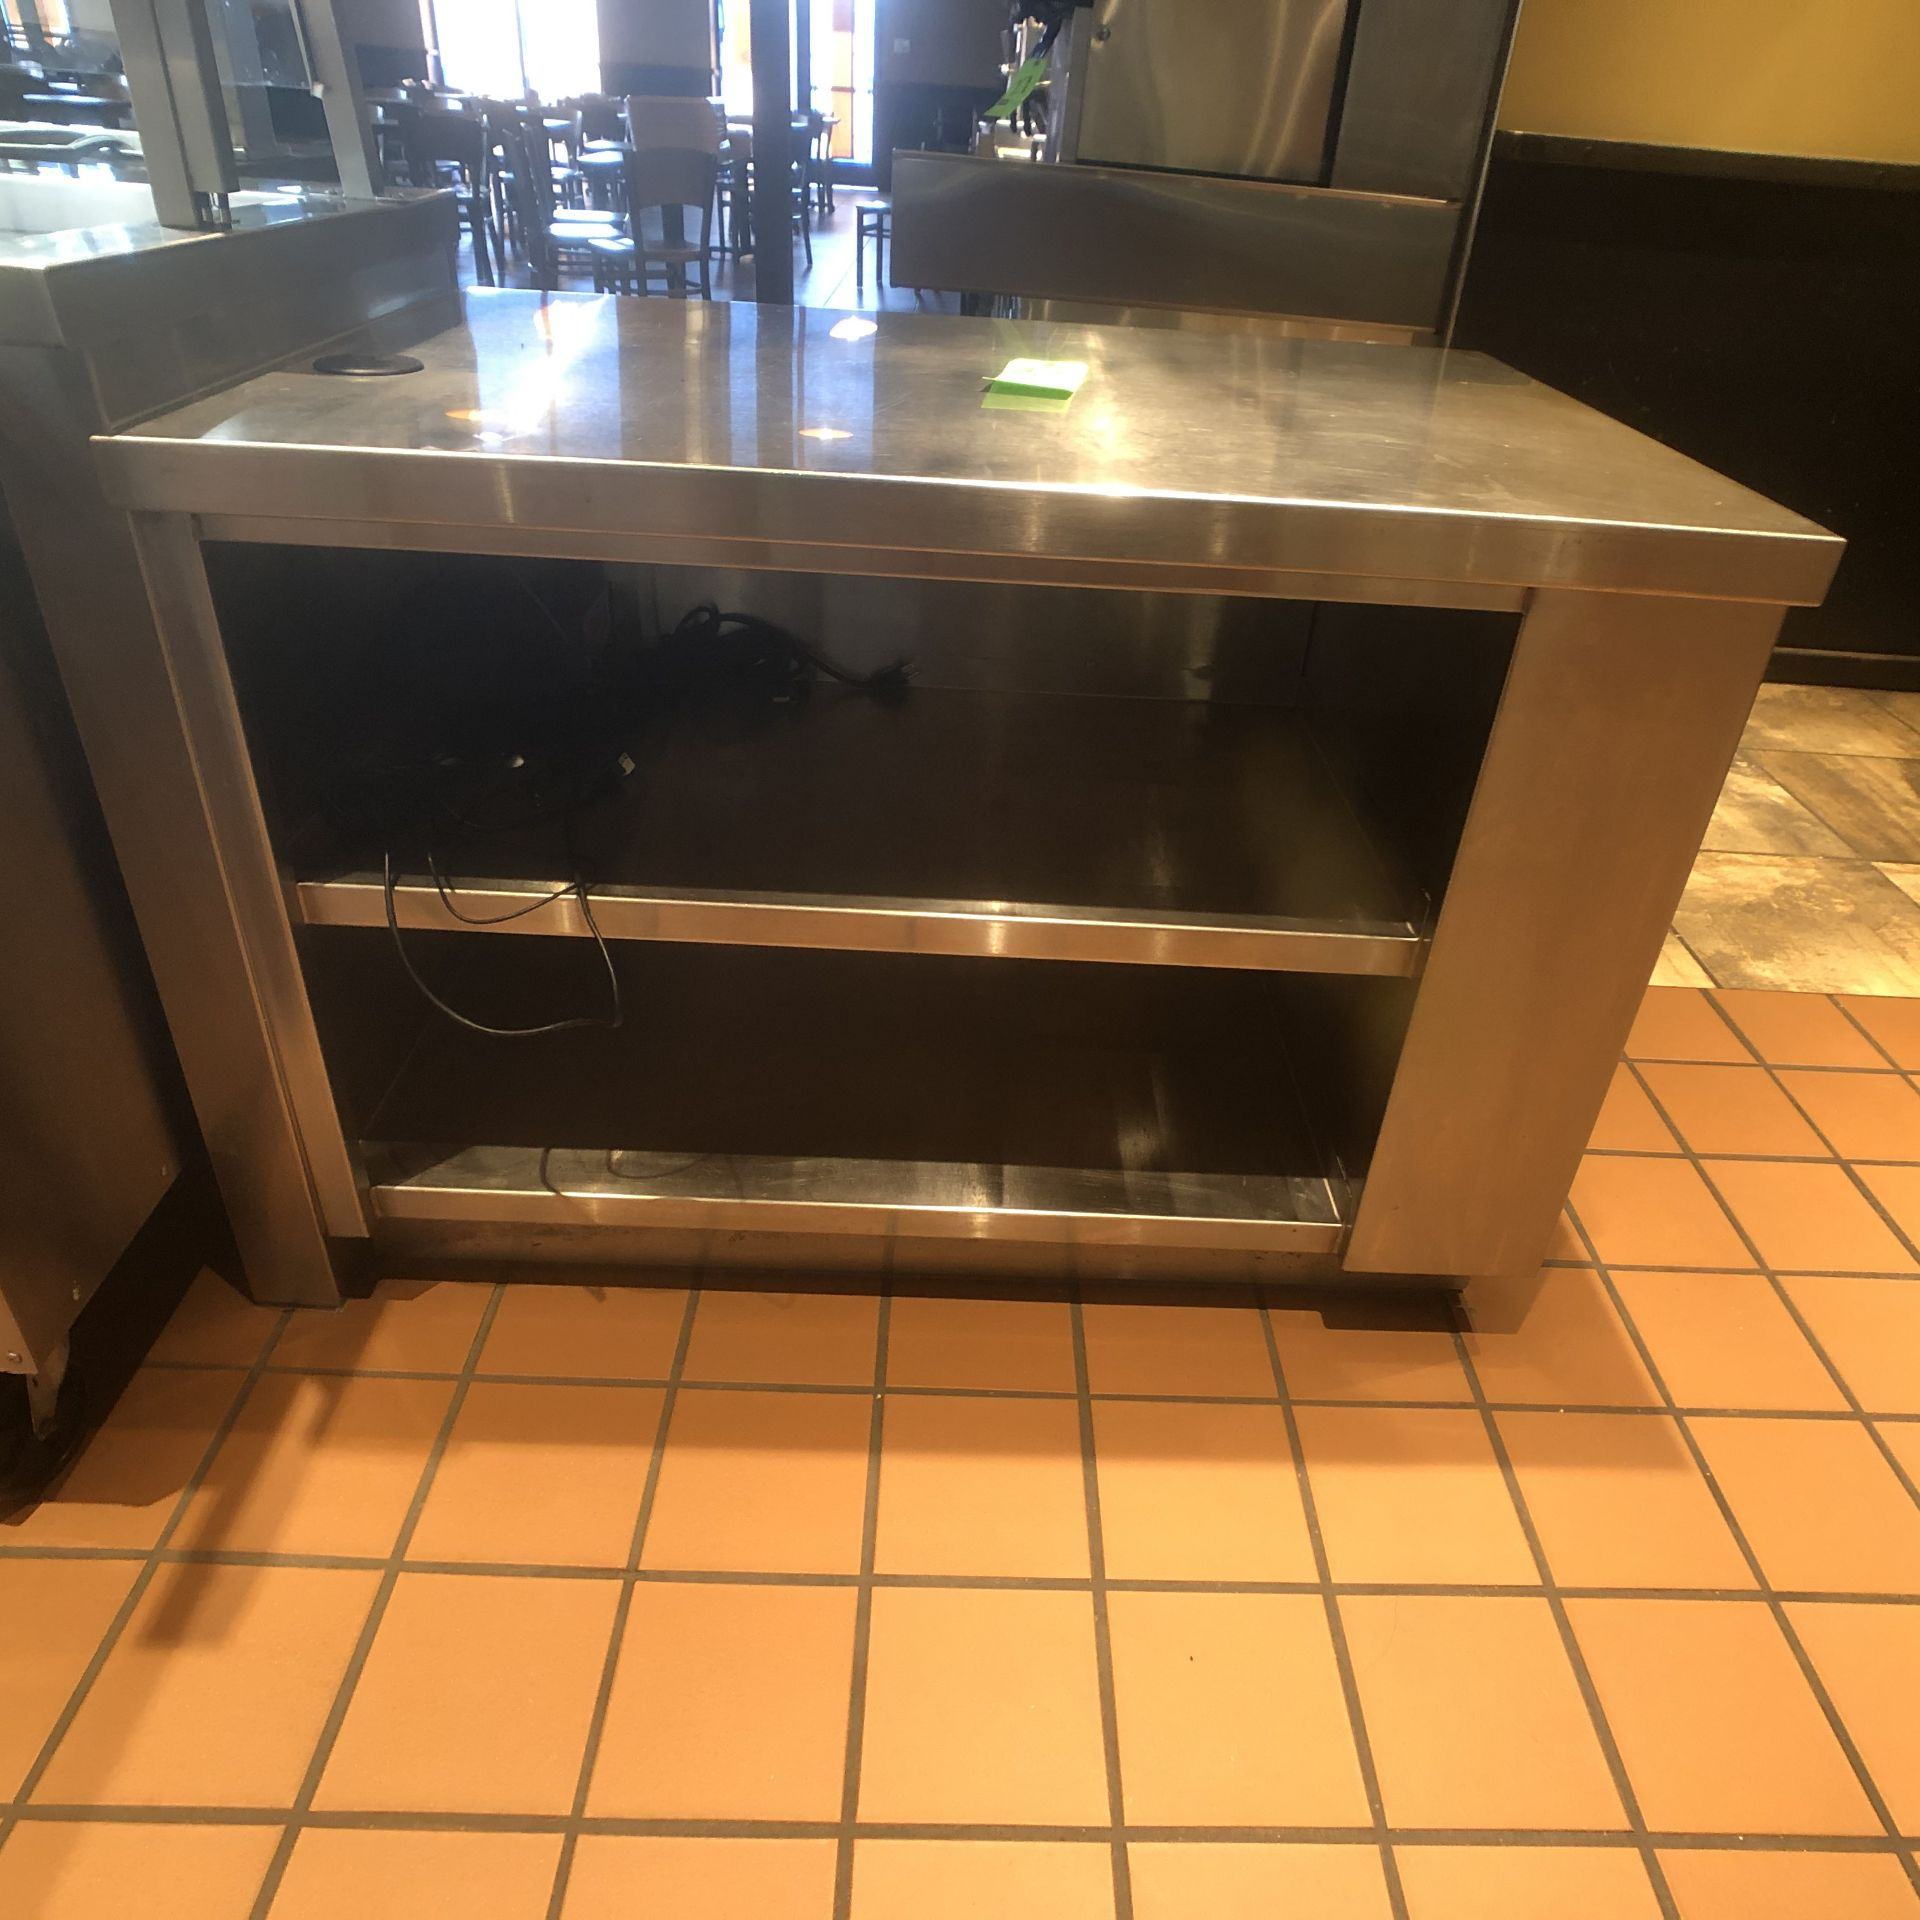 """Food Service Equipment Approx. 4' L x 2'8"""" W S/S Countertop with S/S Shelves, 120/208 V - Image 2 of 5"""